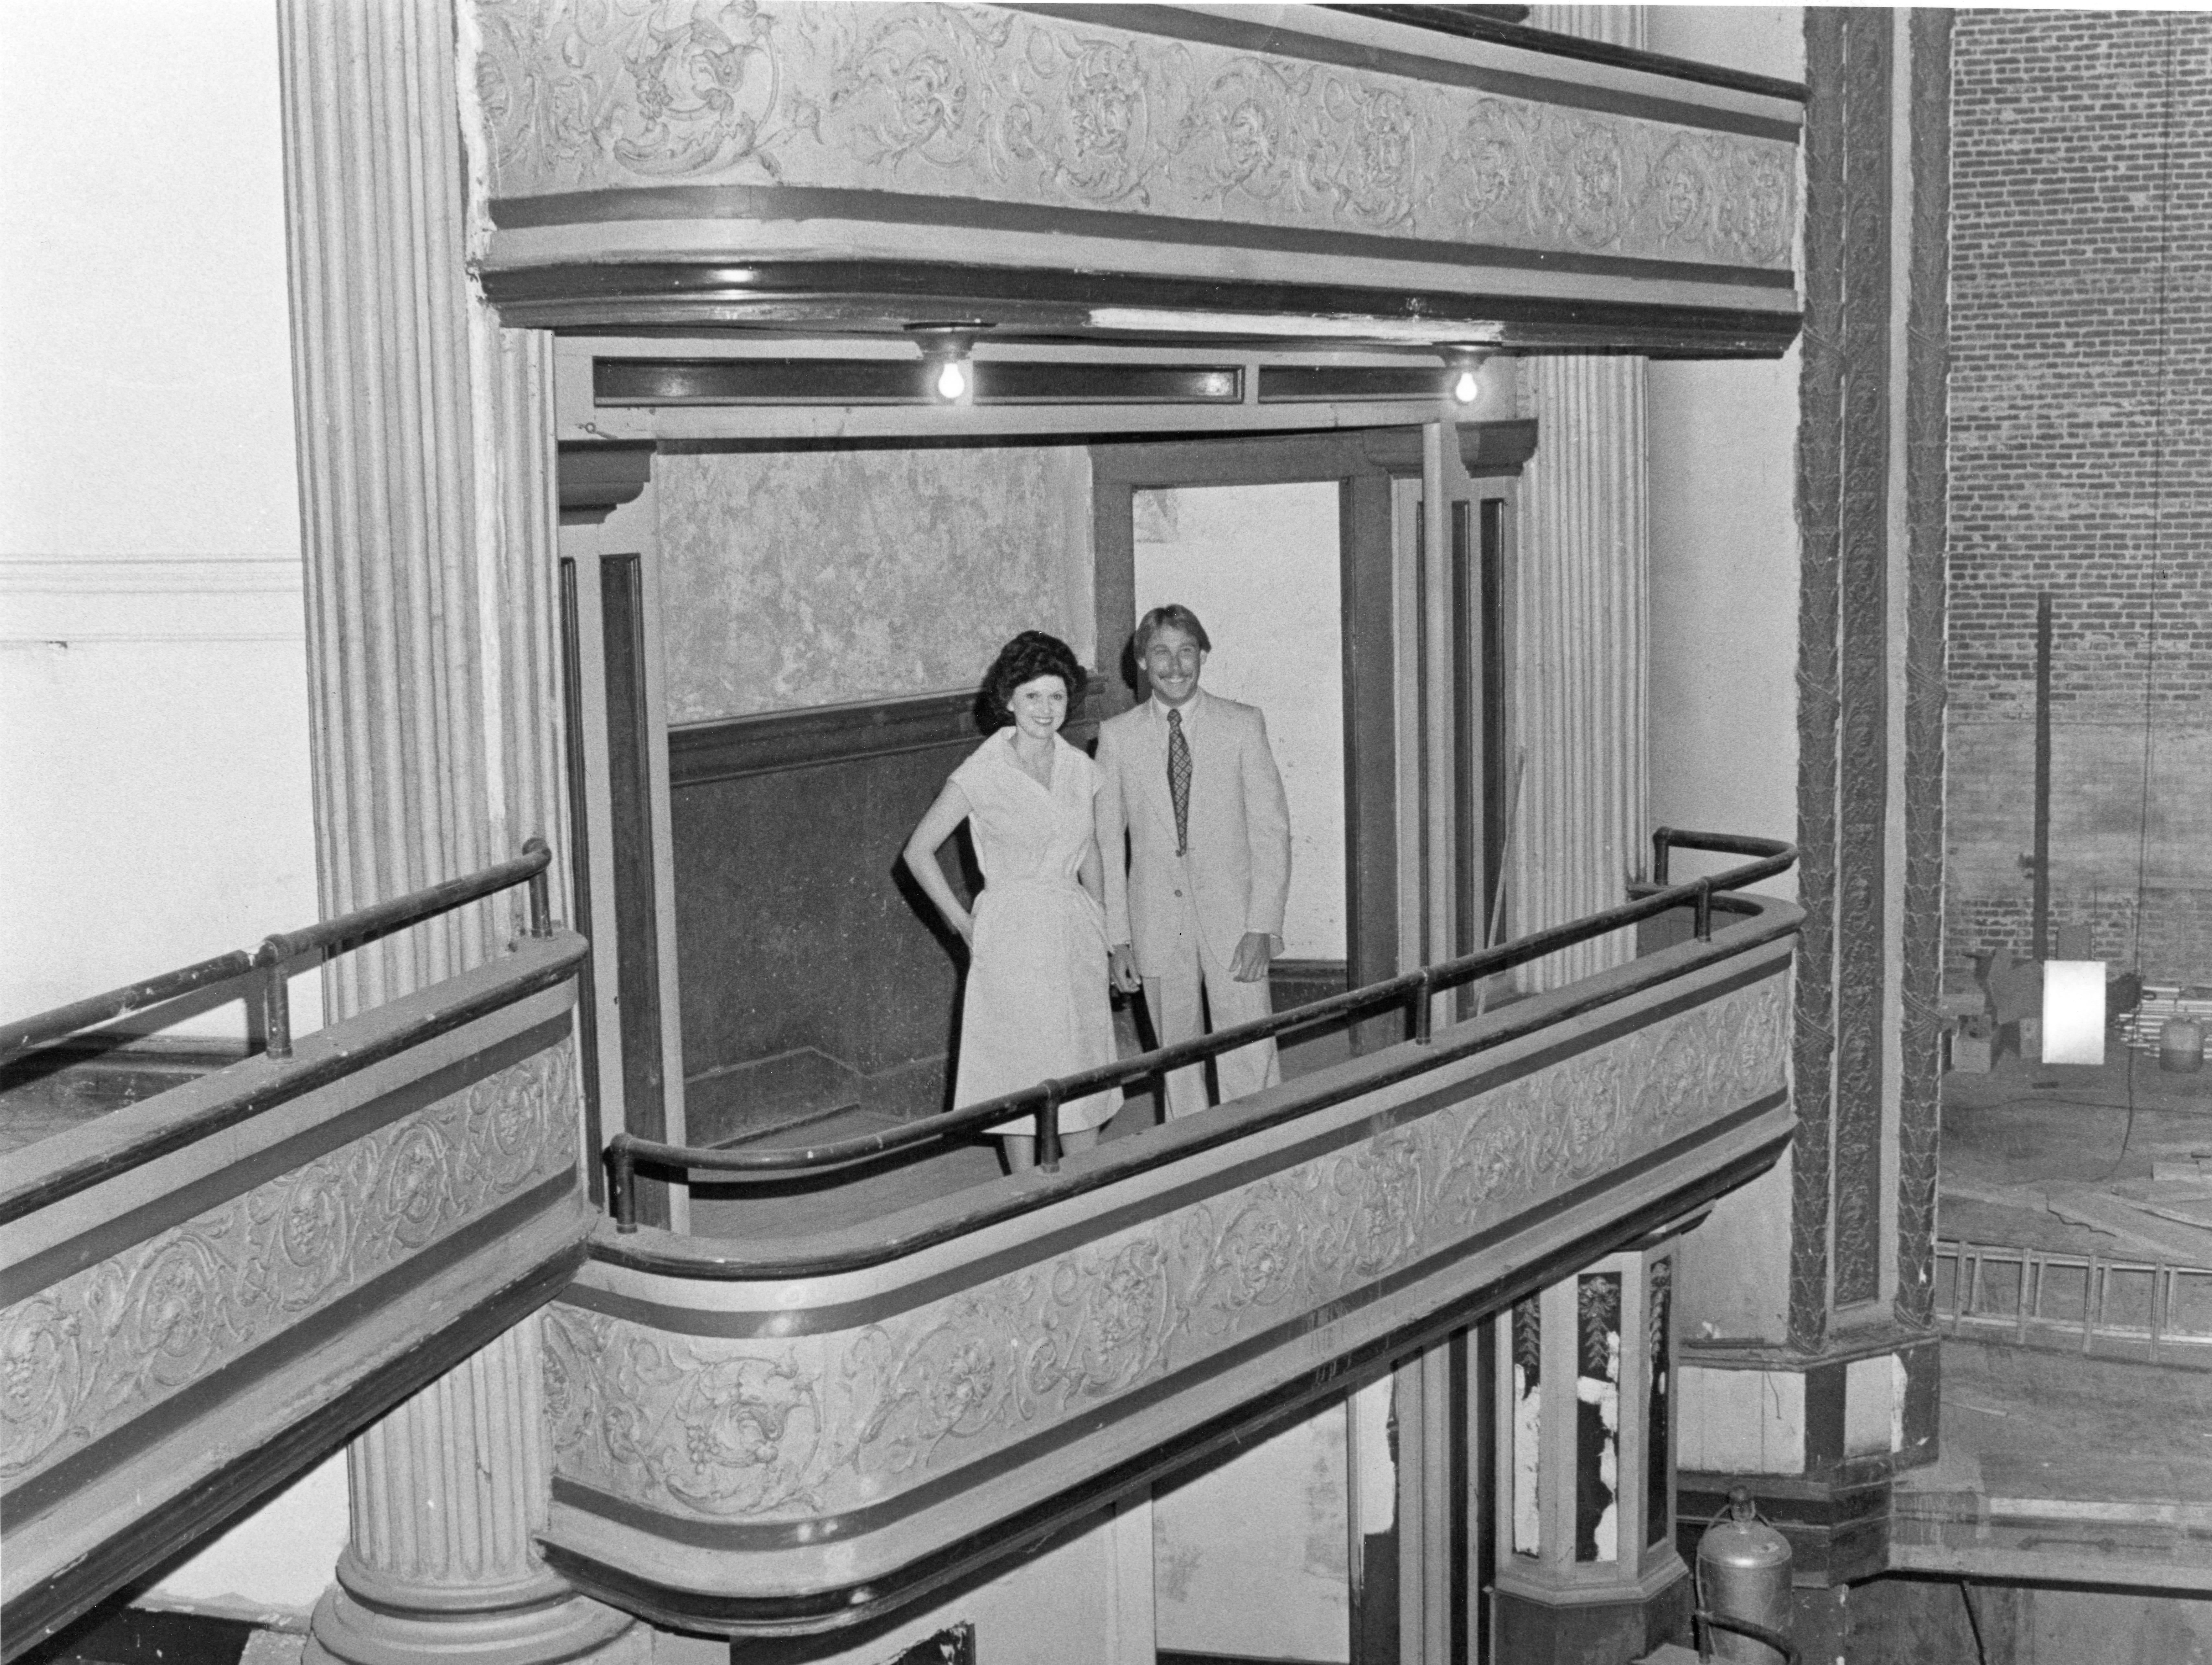 New board members Sonya Butcher and Richard Cooper stand on the balcony of the Bijou Theatre in this undated photo.